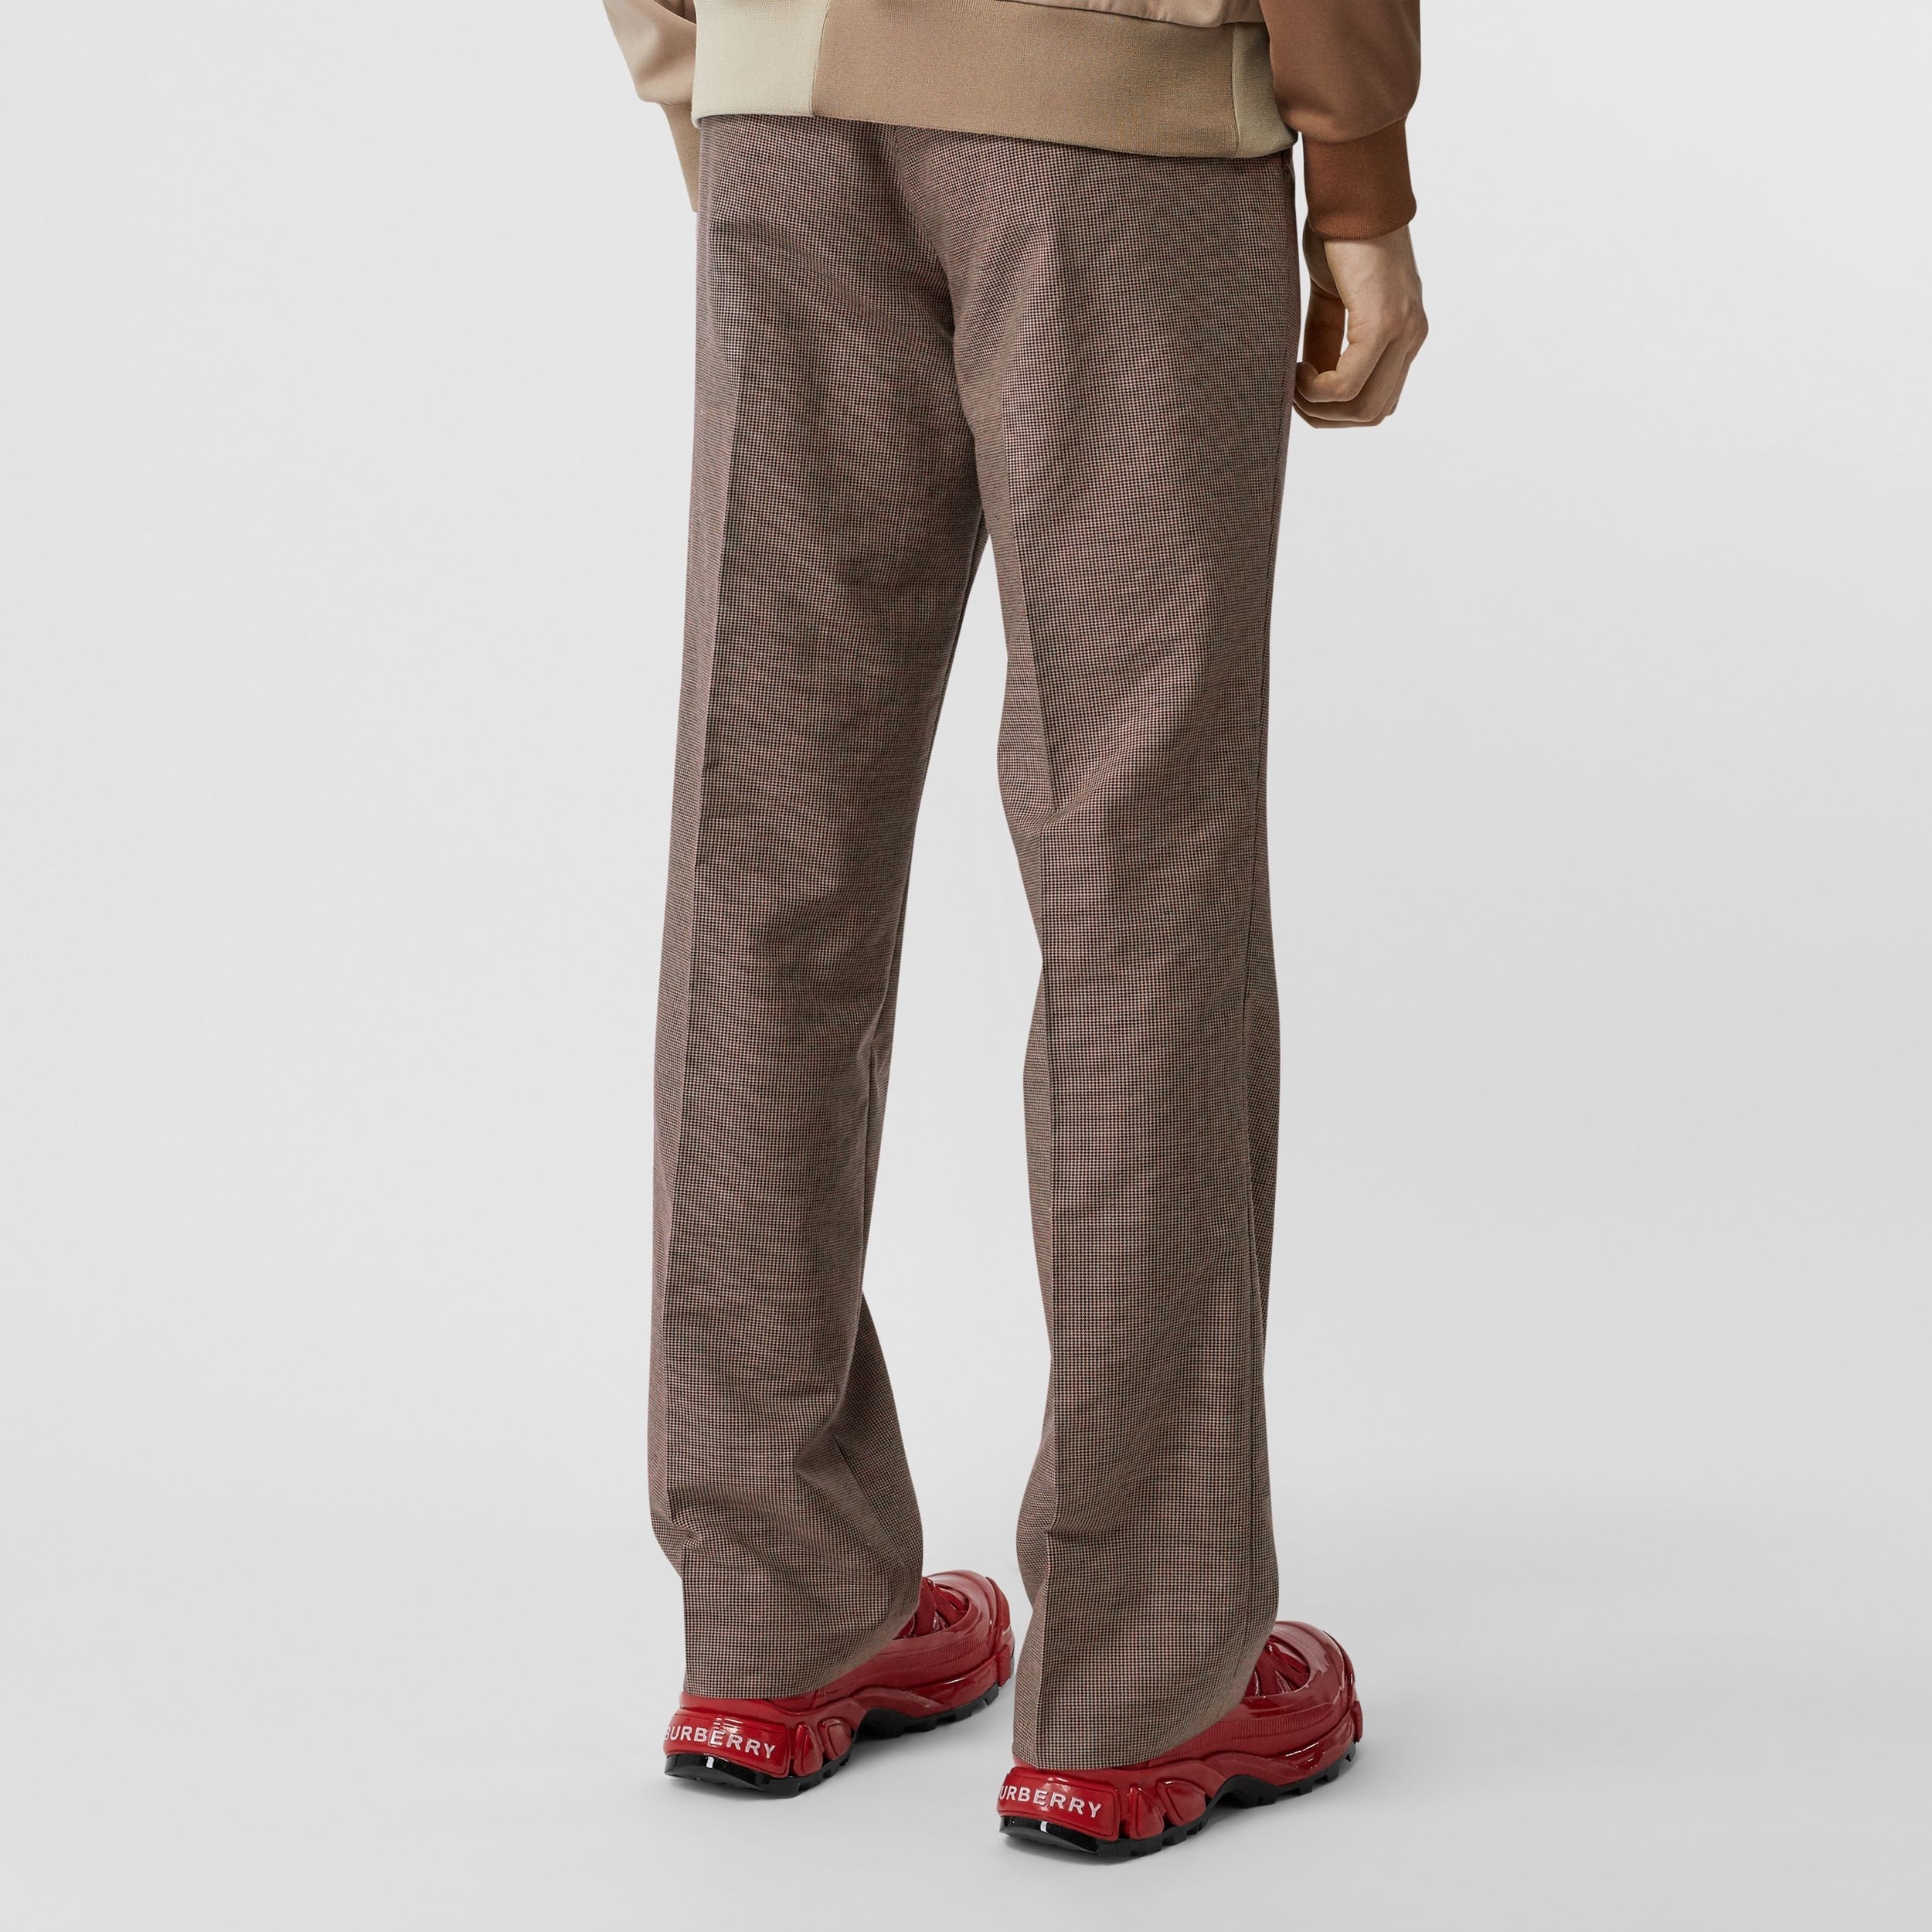 Pocket Detail Wool Tailored Trousers in Beige - Men | Burberry - 3